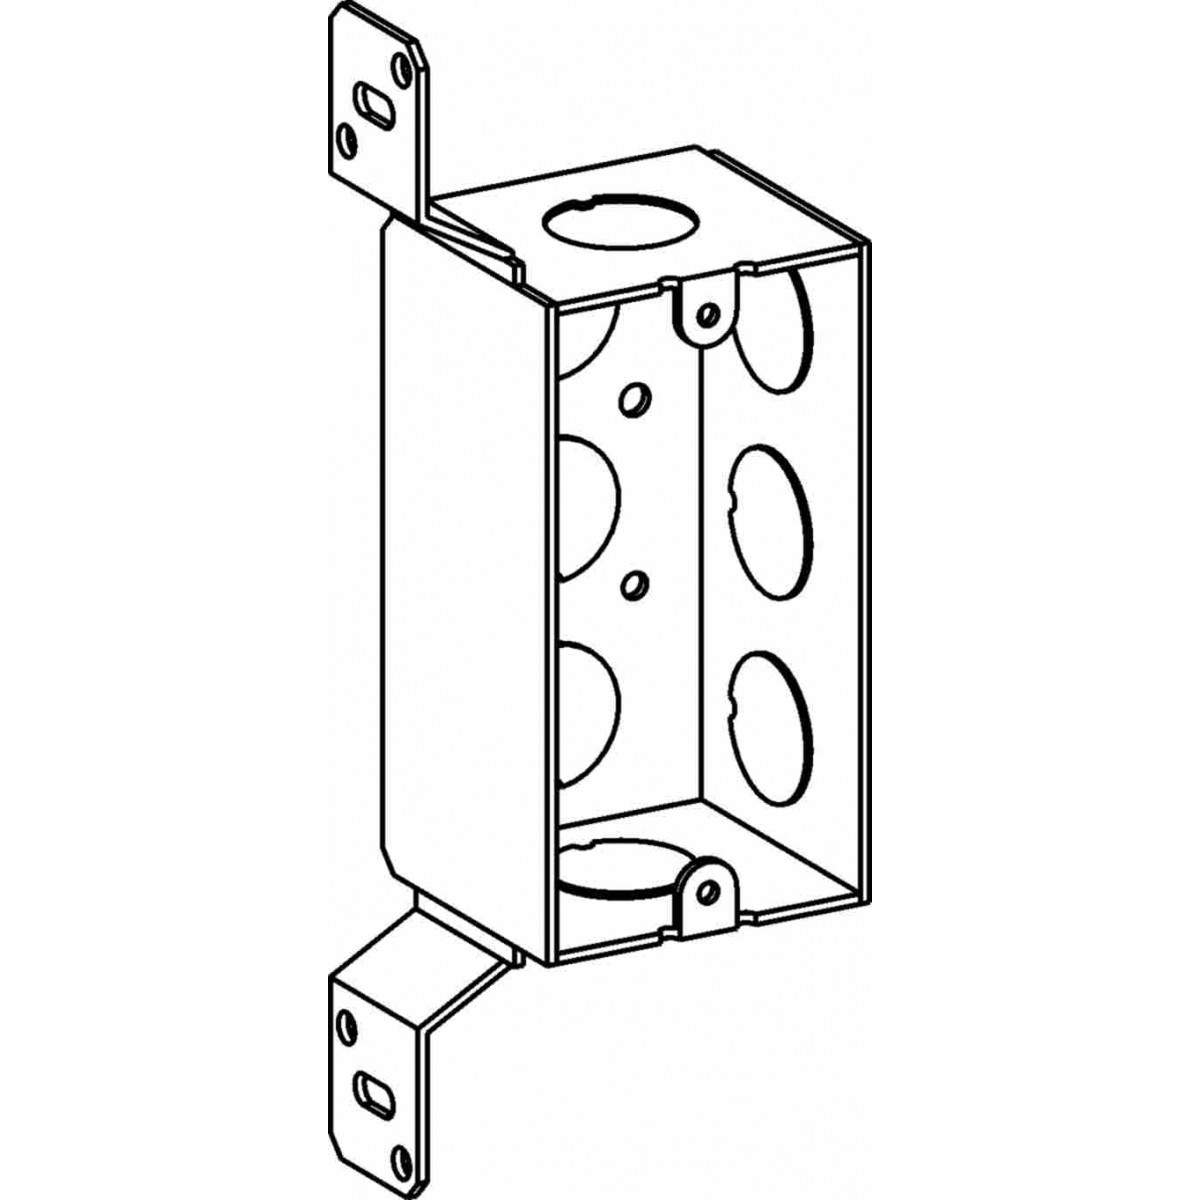 3 Gang Junction Box Dimensions, 3, Free Engine Image For